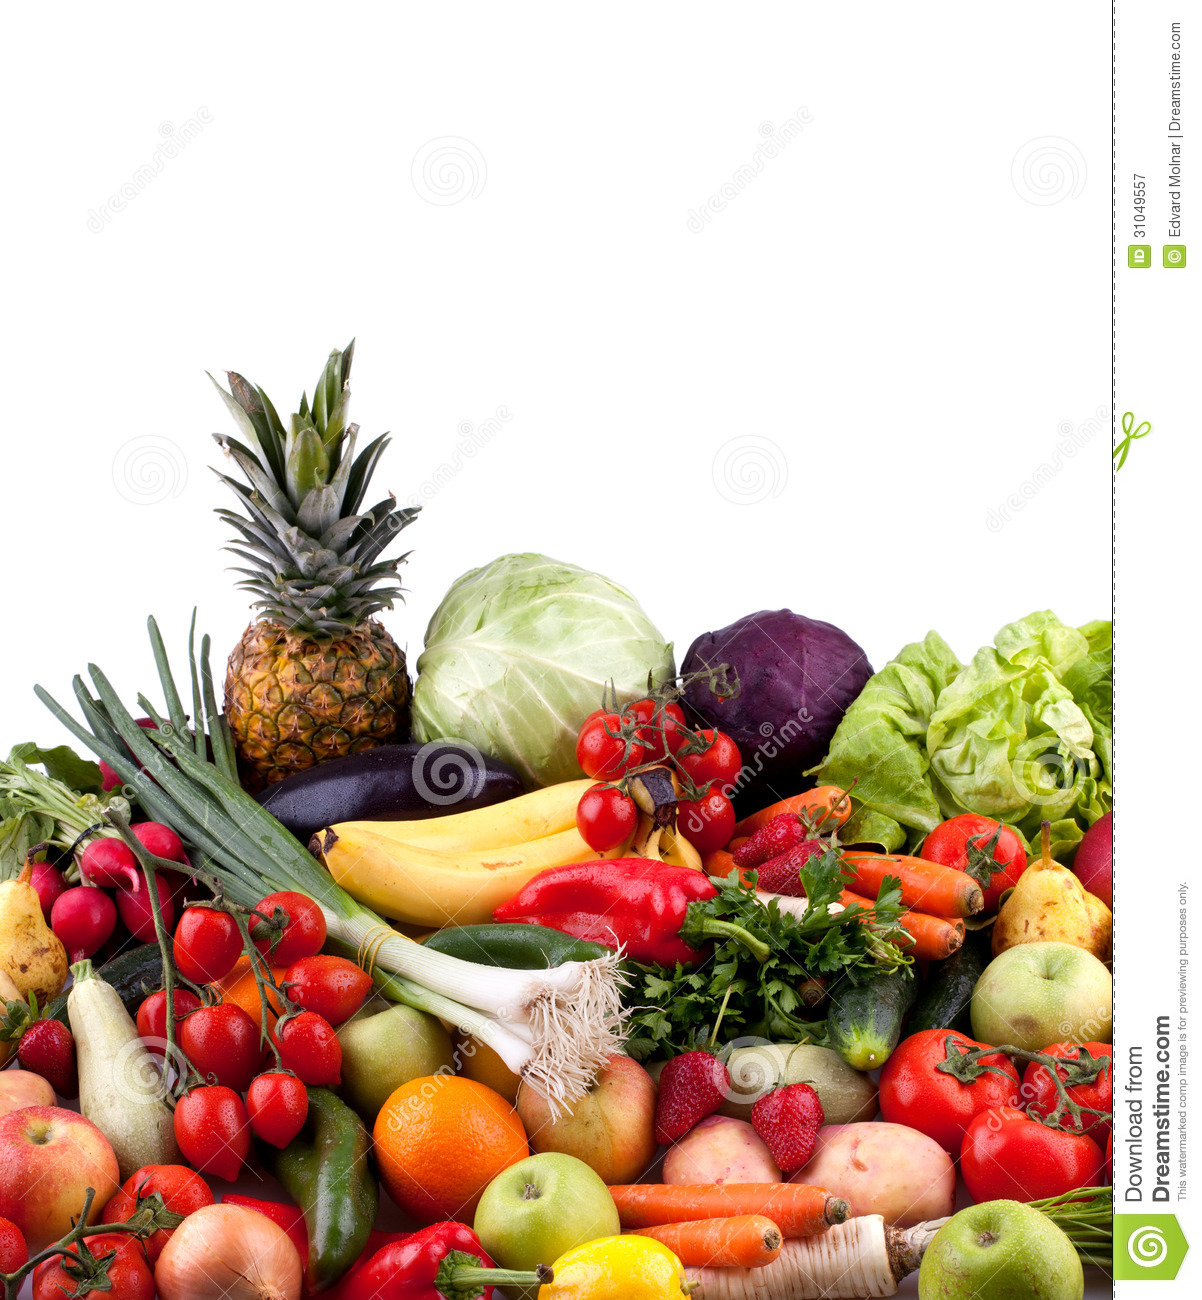 fruits and vegetables royalty free stock photography image 31049557